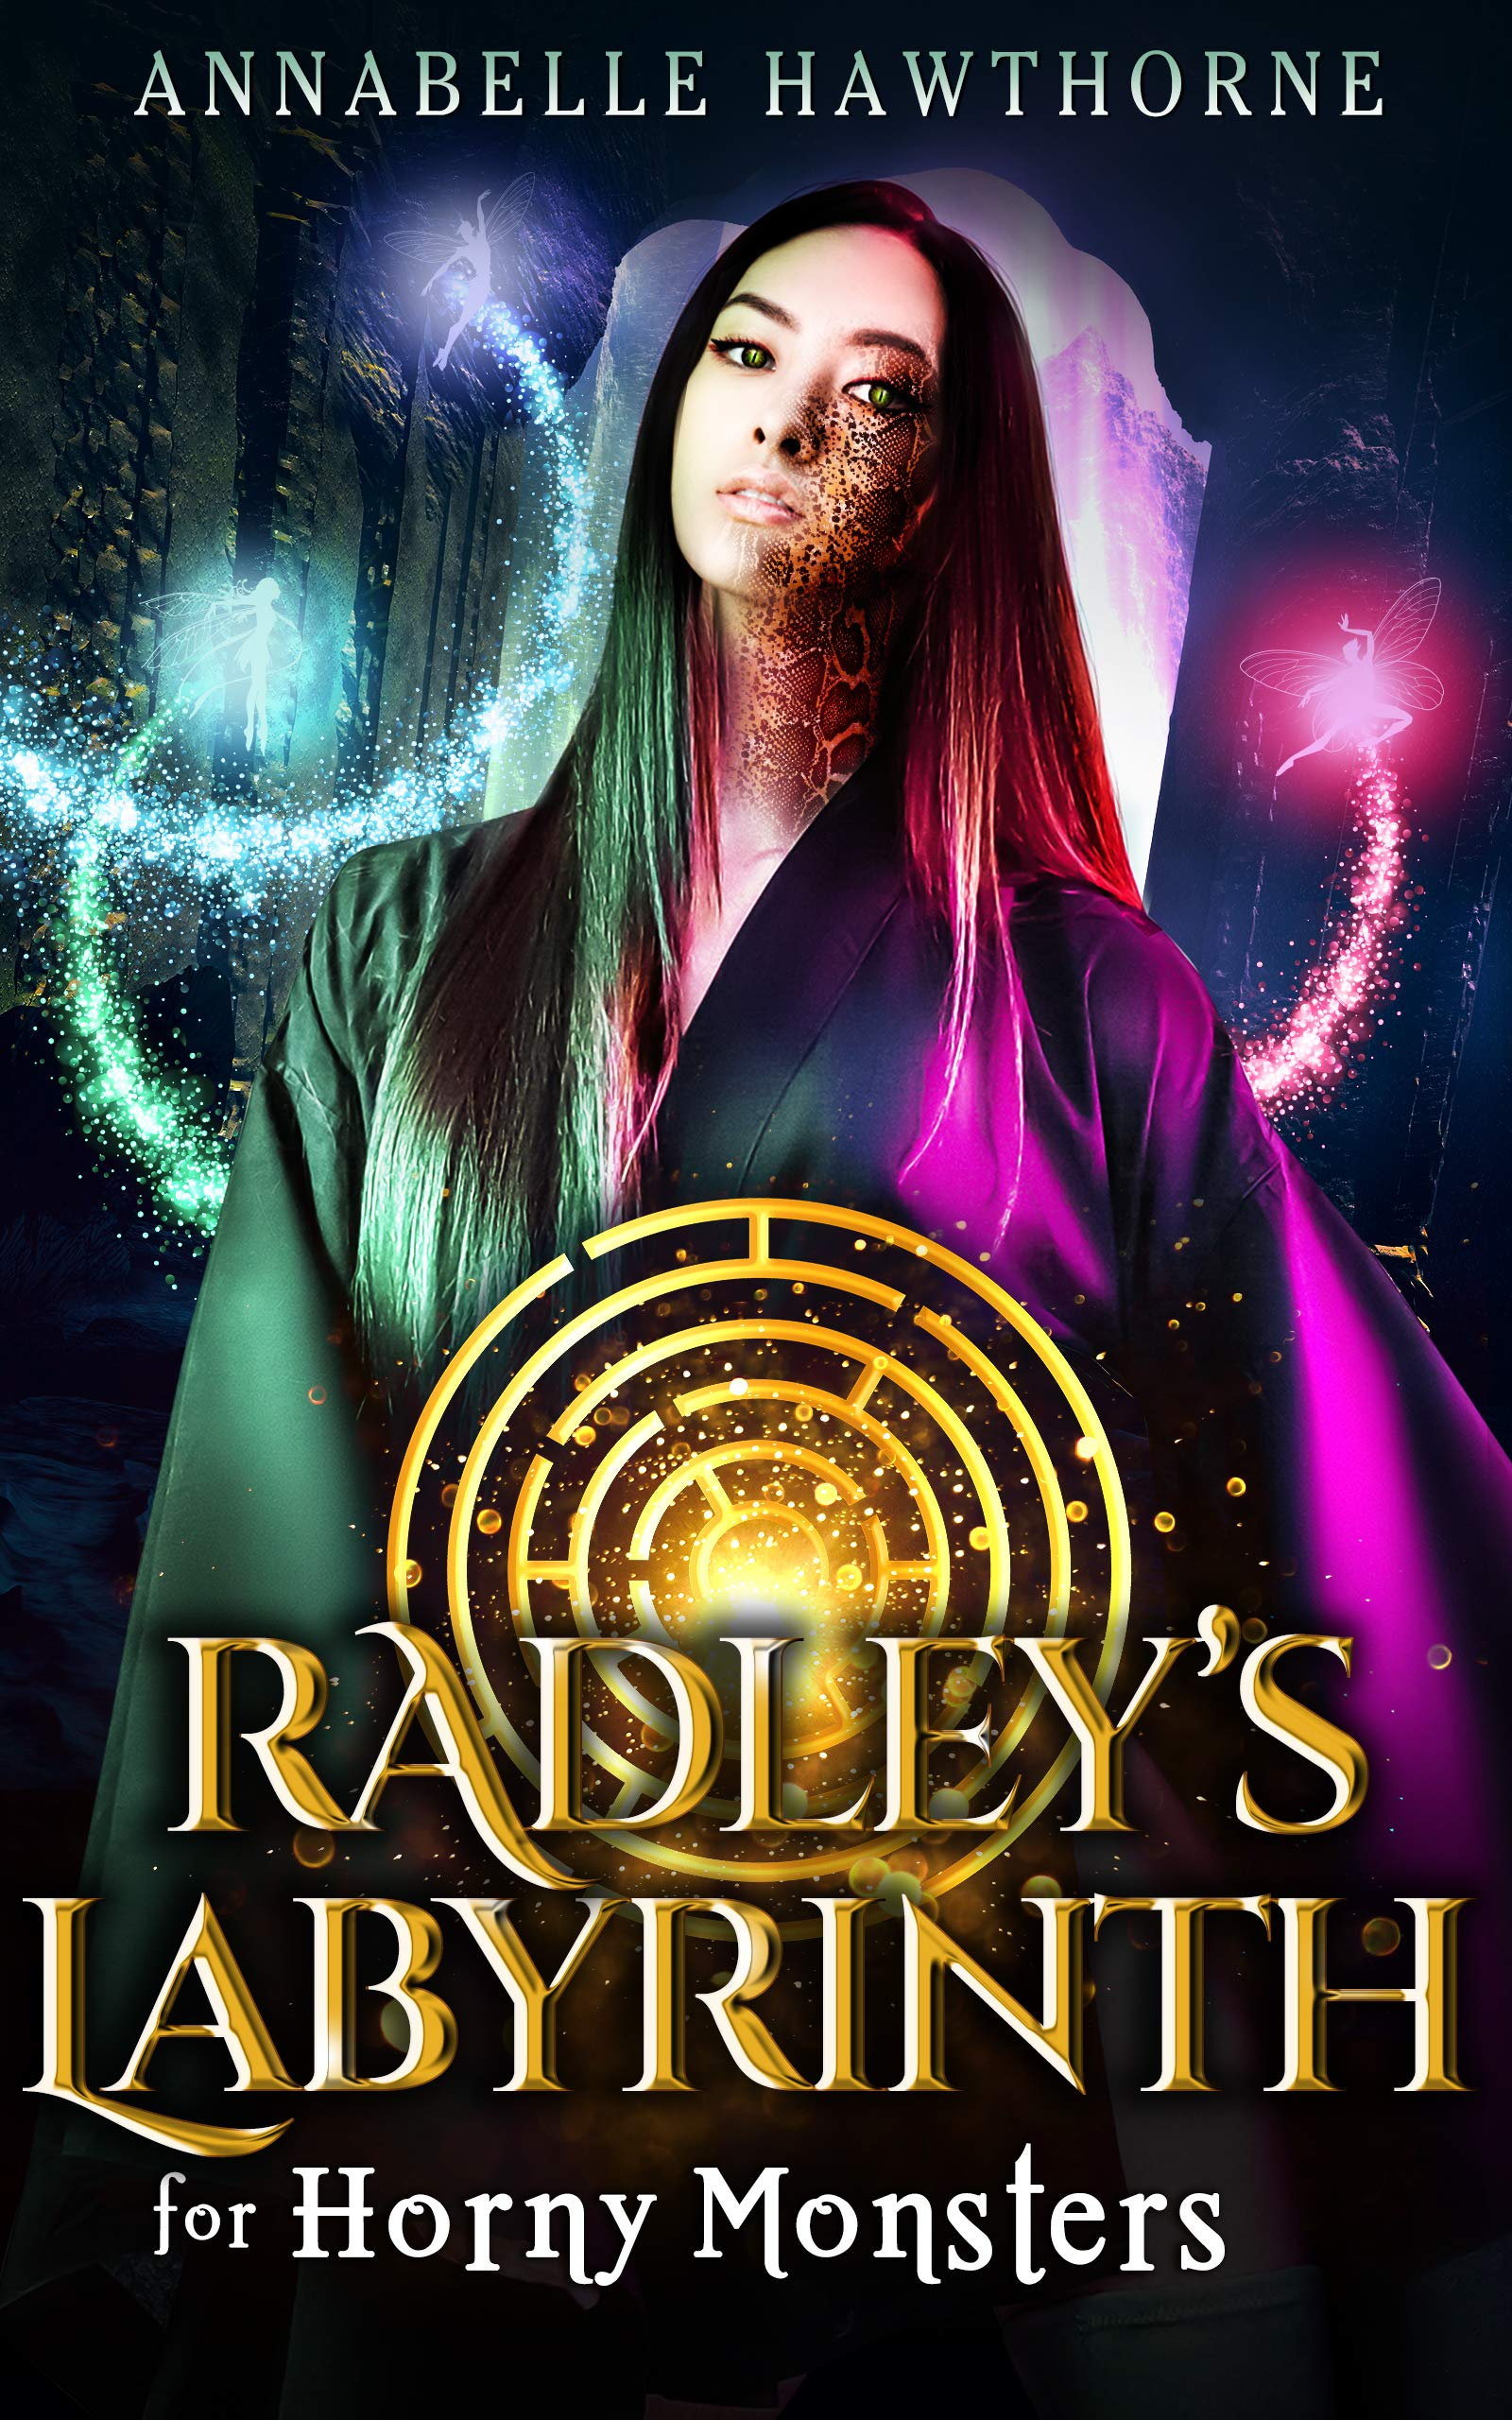 Radley's Labyrinth for Horny Monsters